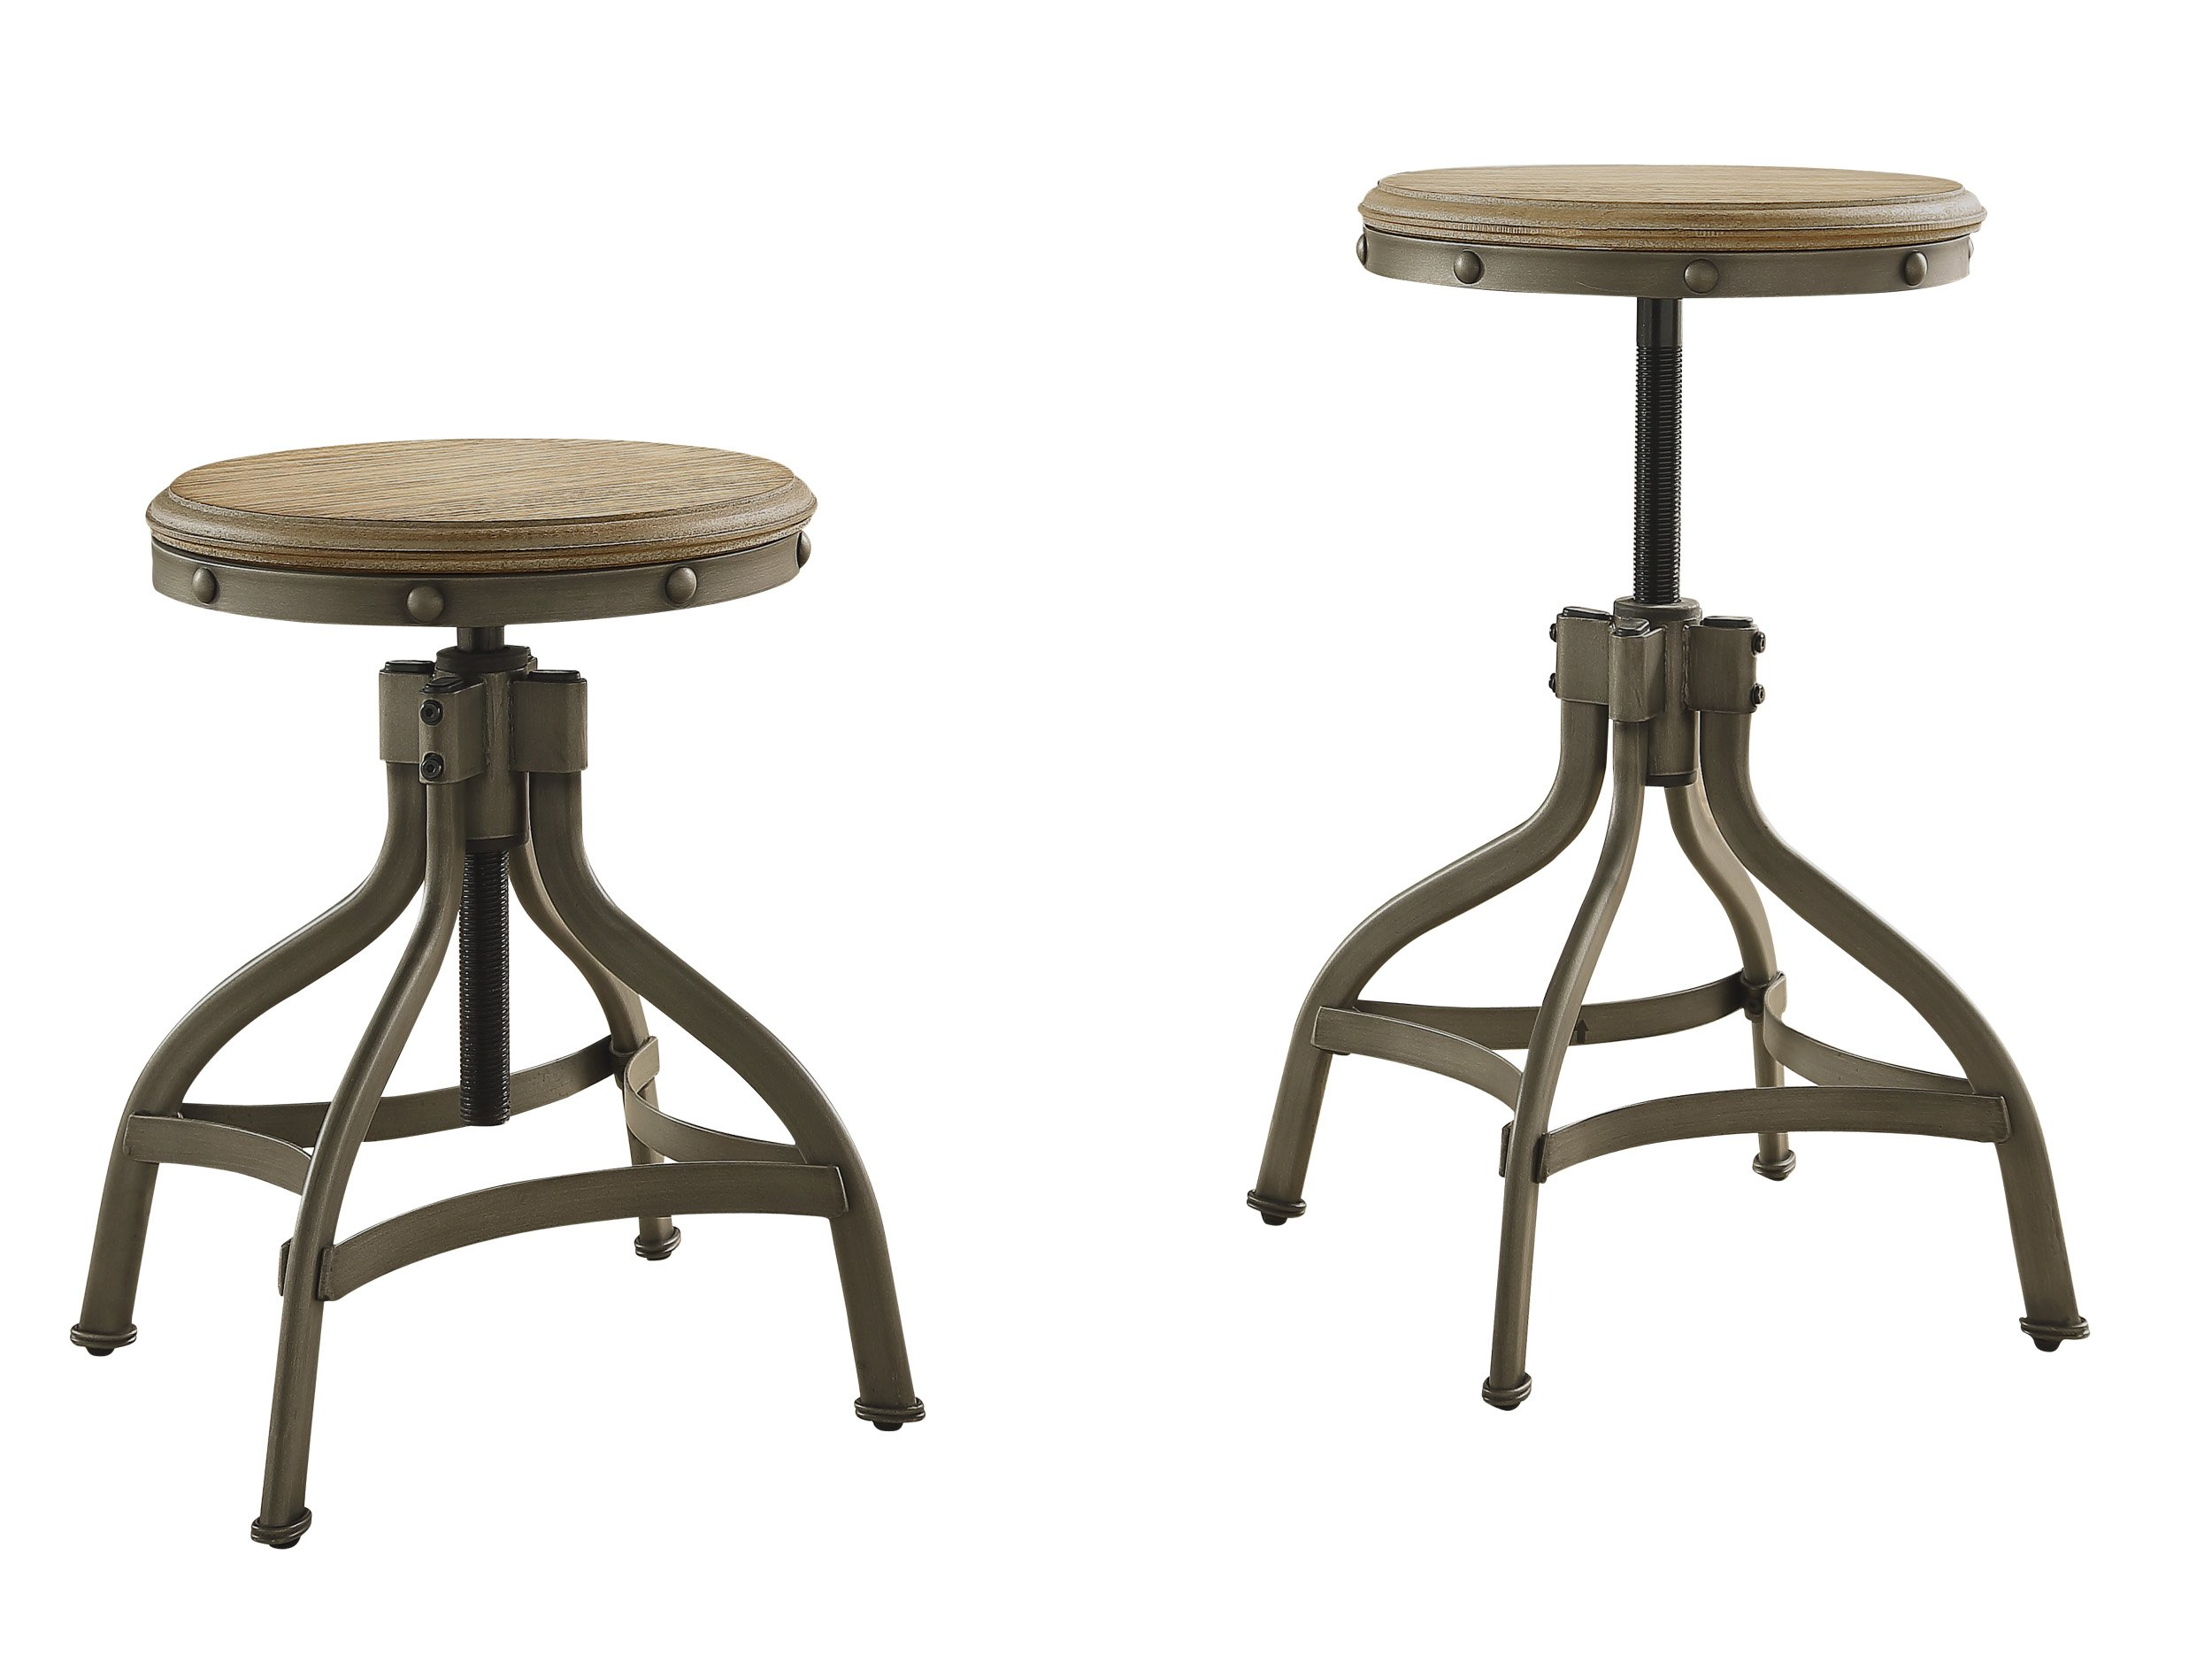 Homelegance Beacher Adjustable Height Round Dining Chair with Riveted Metal Banding Accent